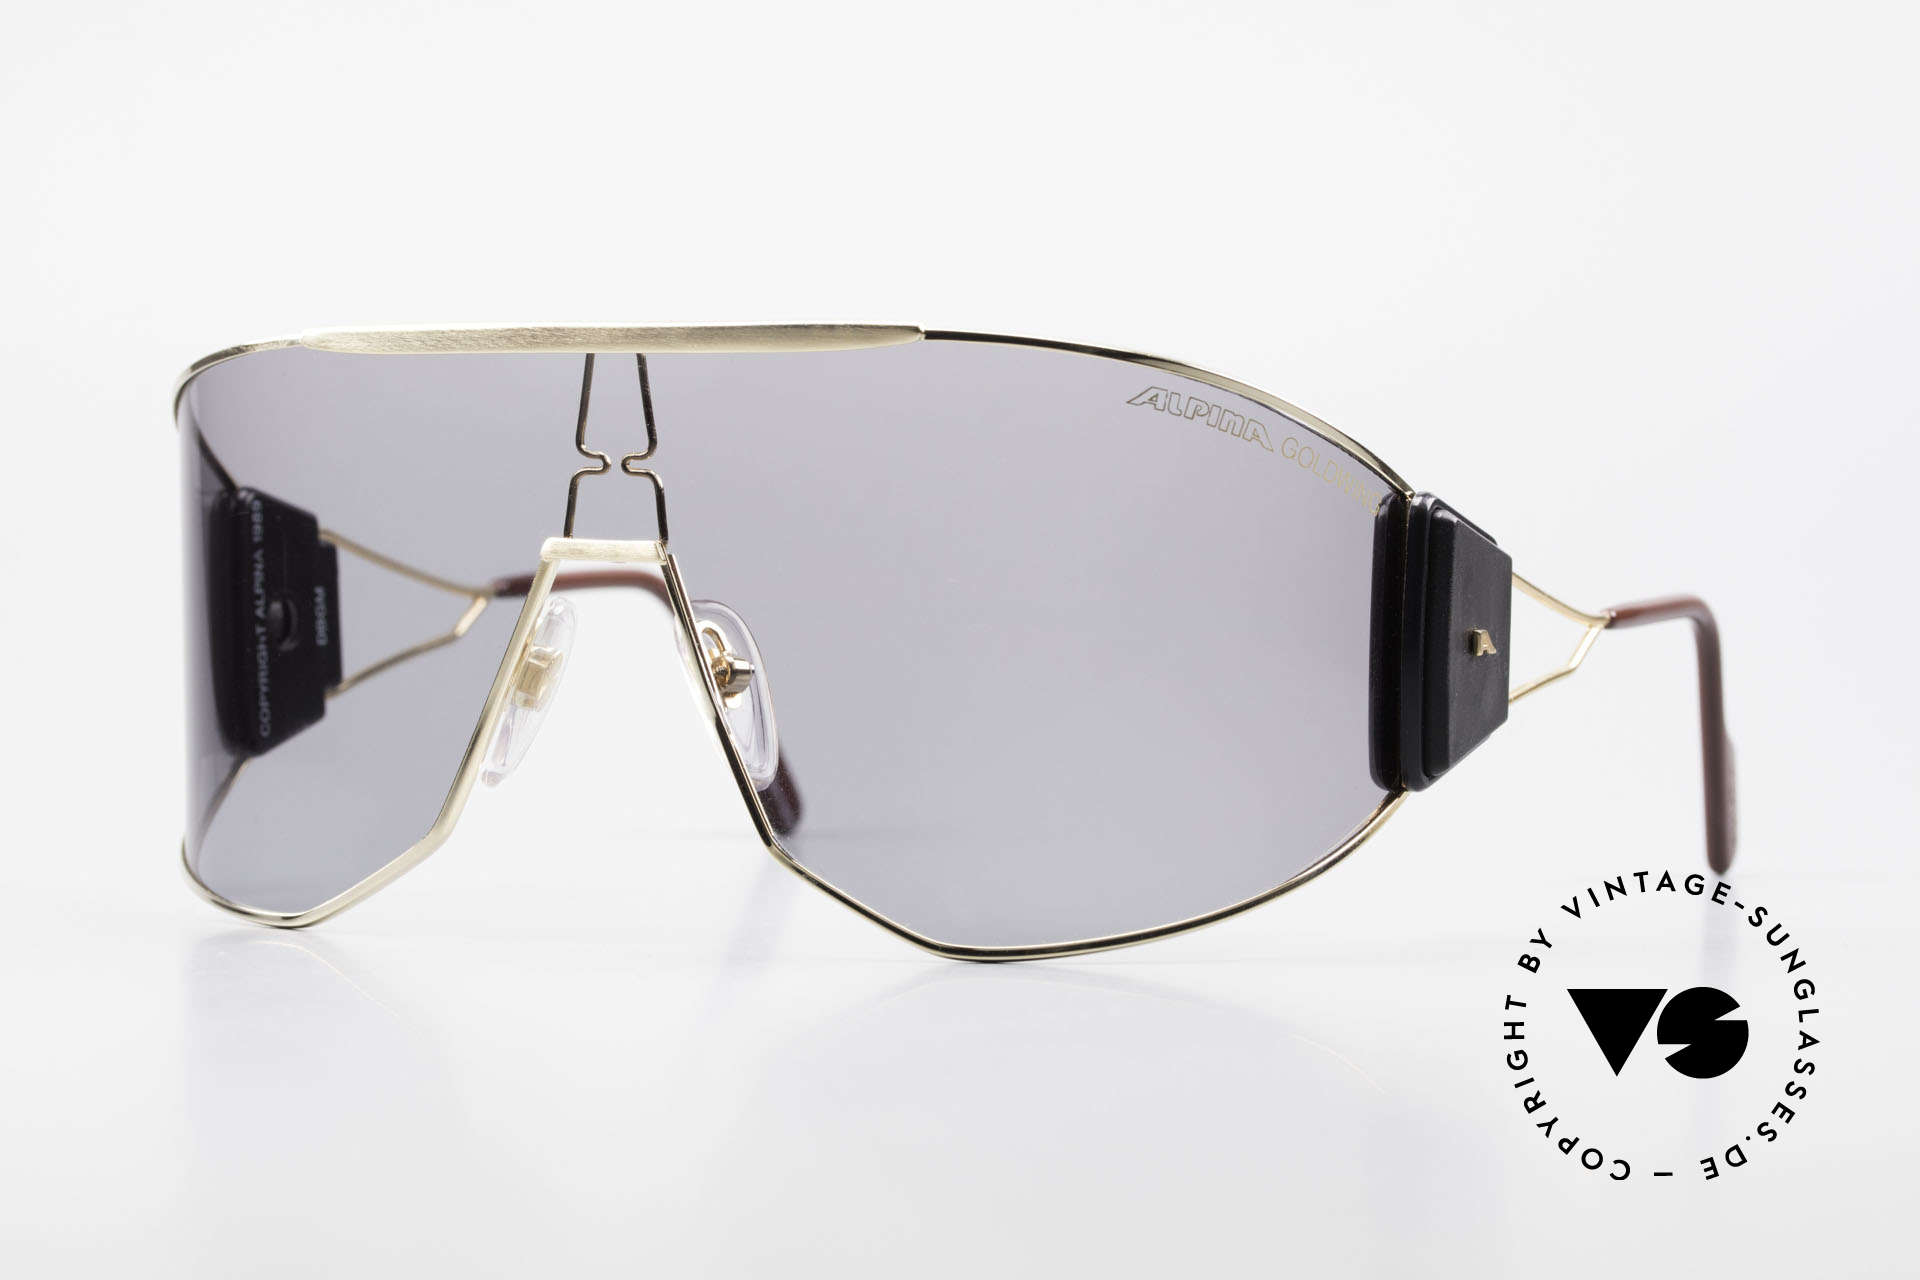 Alpina Goldwing Rare Celebrity Sunglasses 80's, Goldwing: the most wanted Alpina model, worldwide!, Made for Men and Women